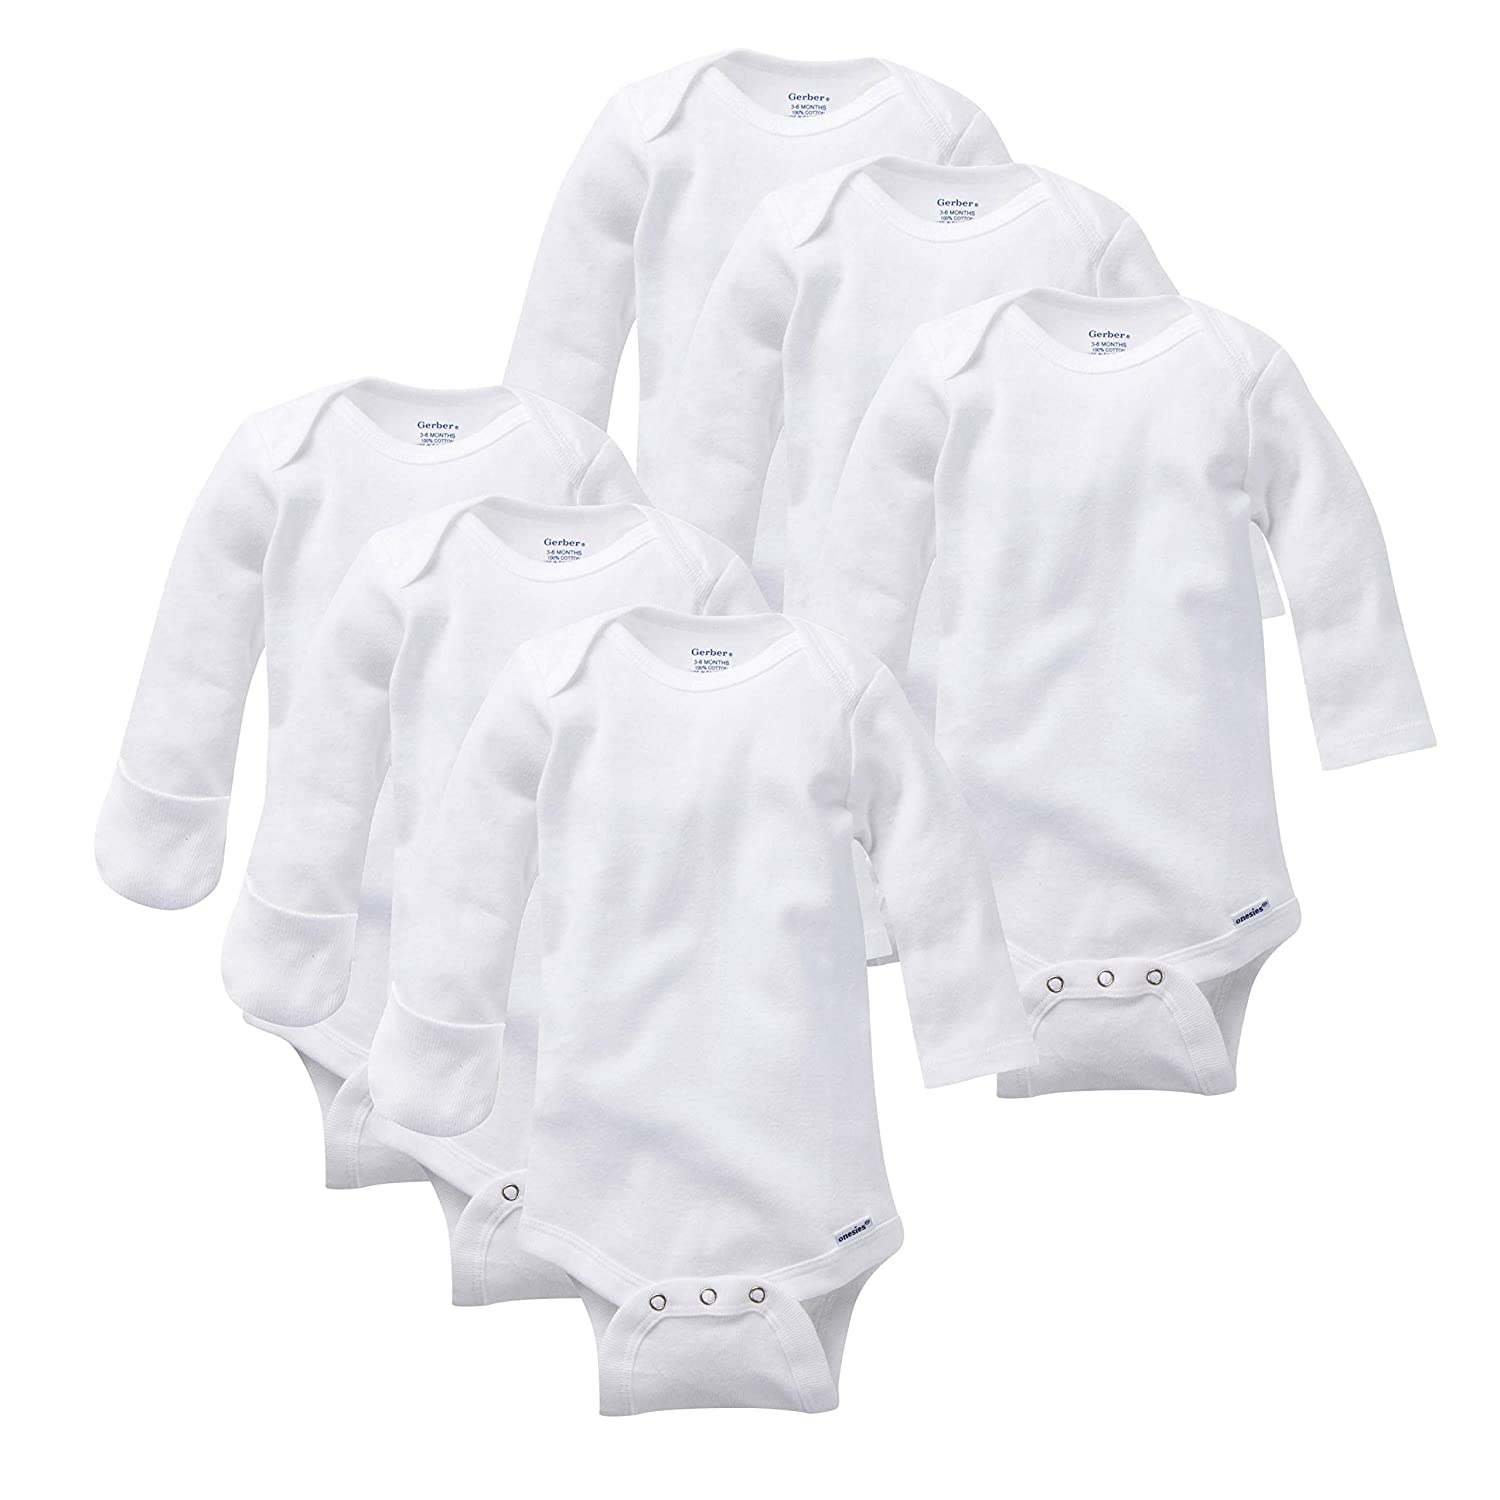 Gerber Baby Girls' 6-Pack Long-Sleeve Mitten-Cuff Onesies Bodysuit Gerber Children' s Apparel